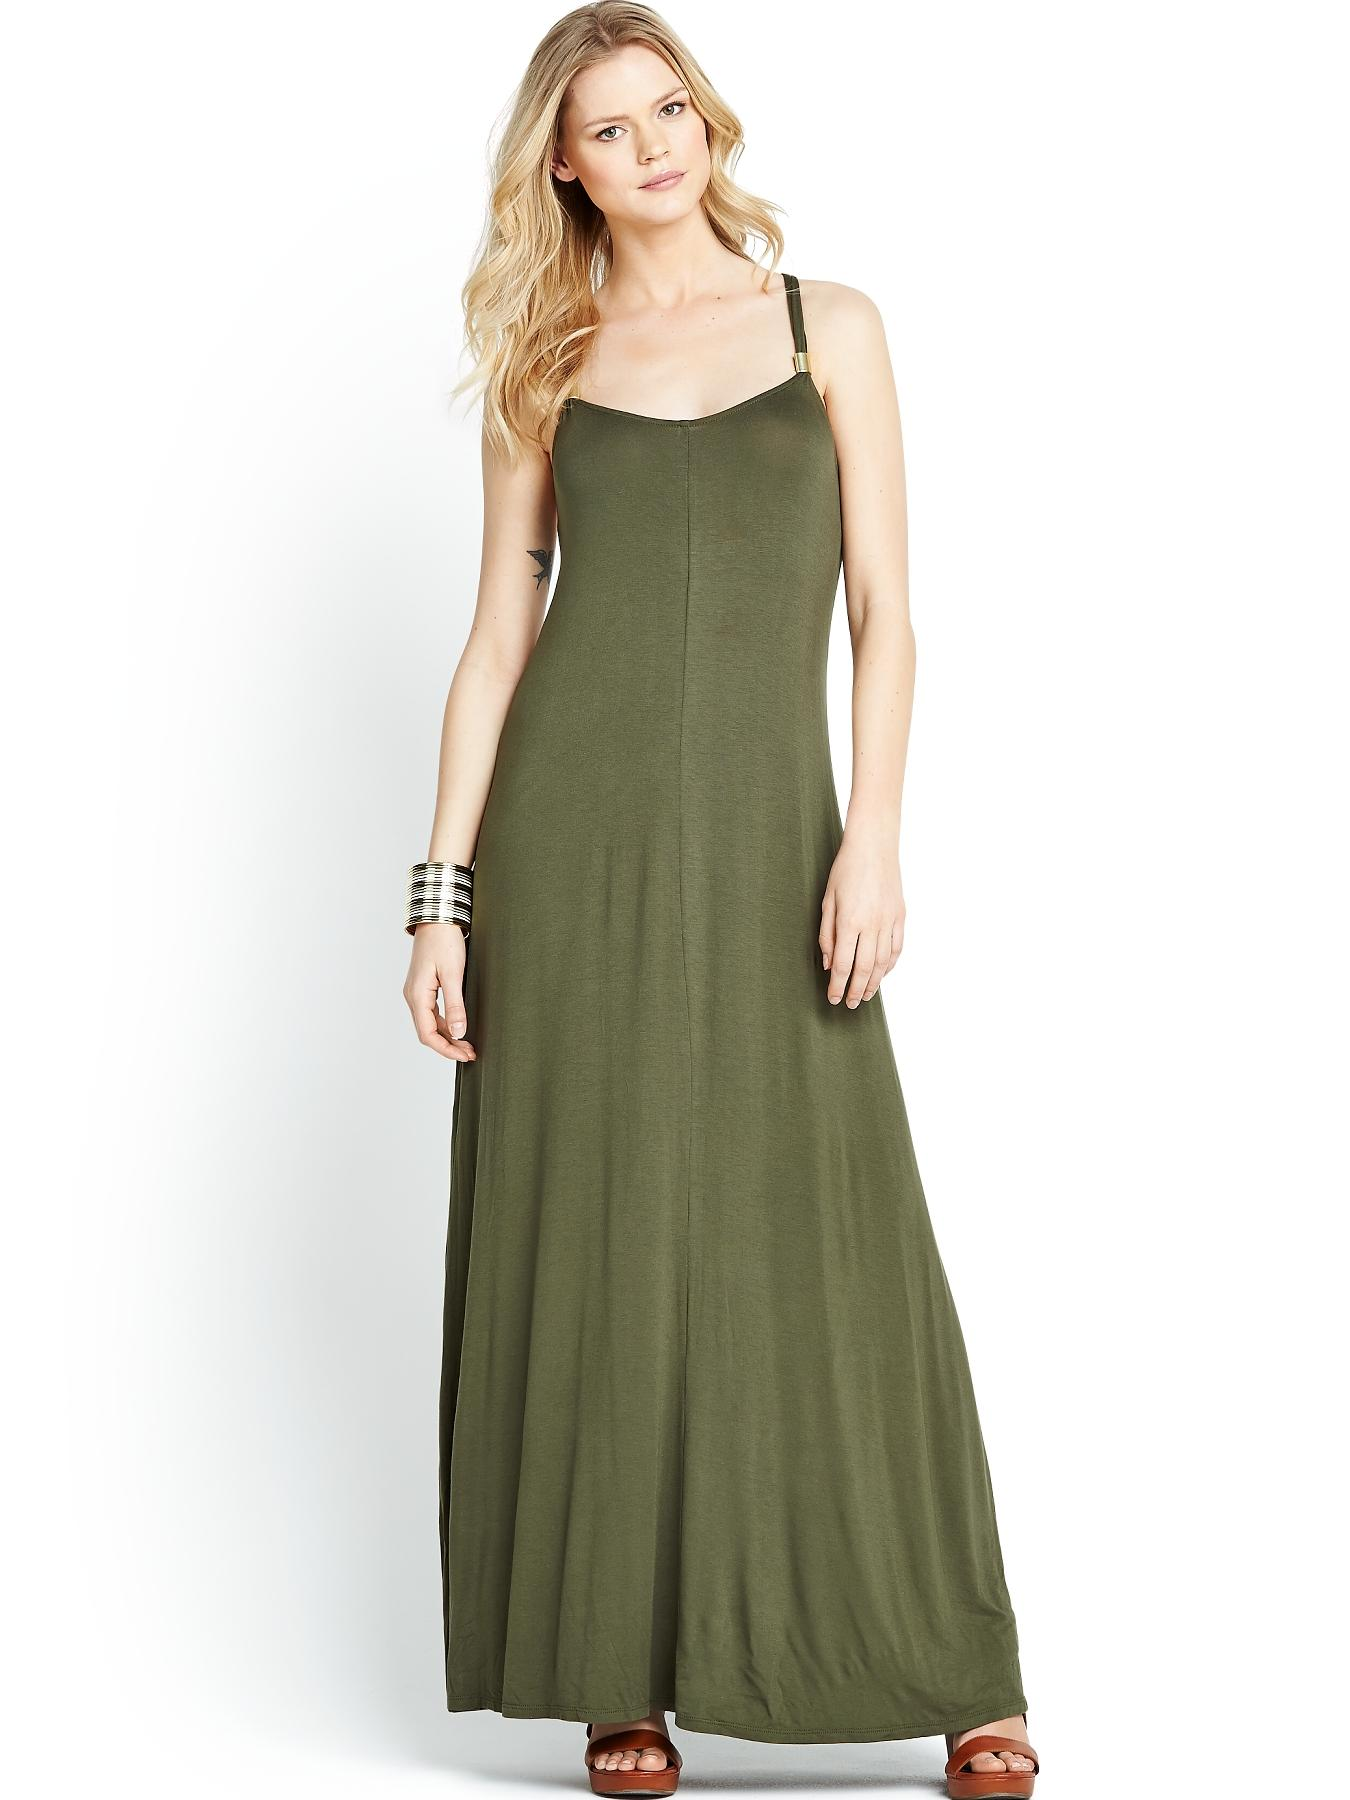 Metal Strap Detail Maxi Dress, Black,Khaki